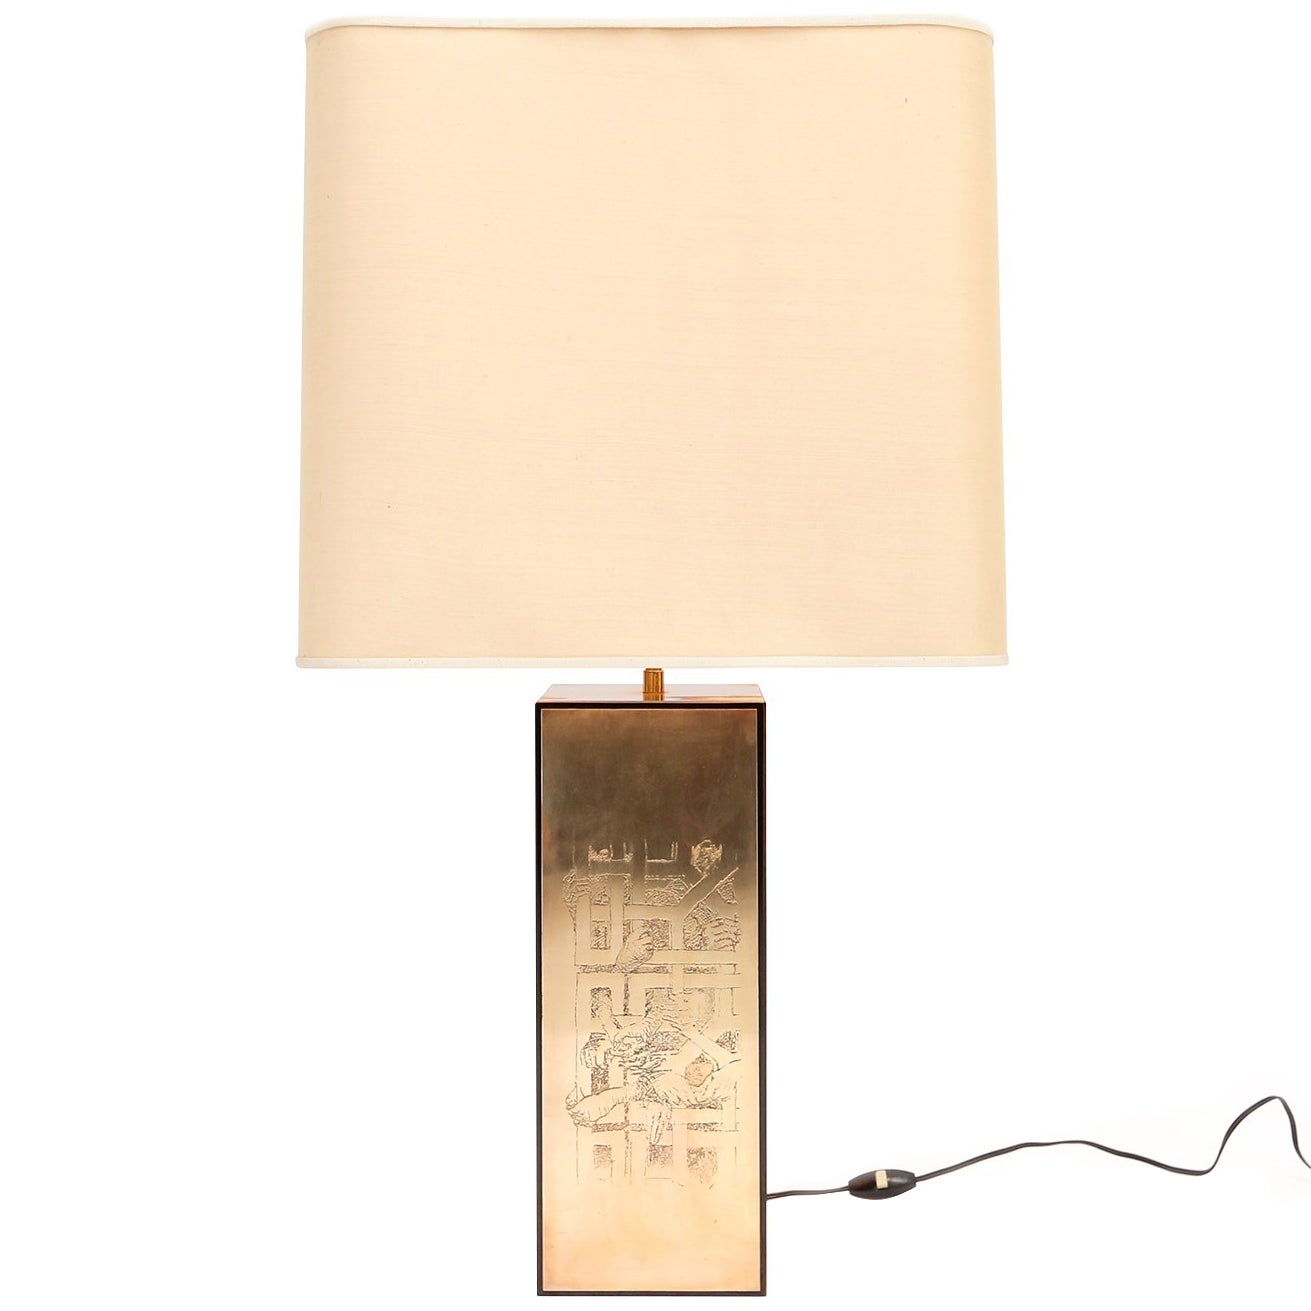 Brass Etched Table Lamp, Belgium 1970s